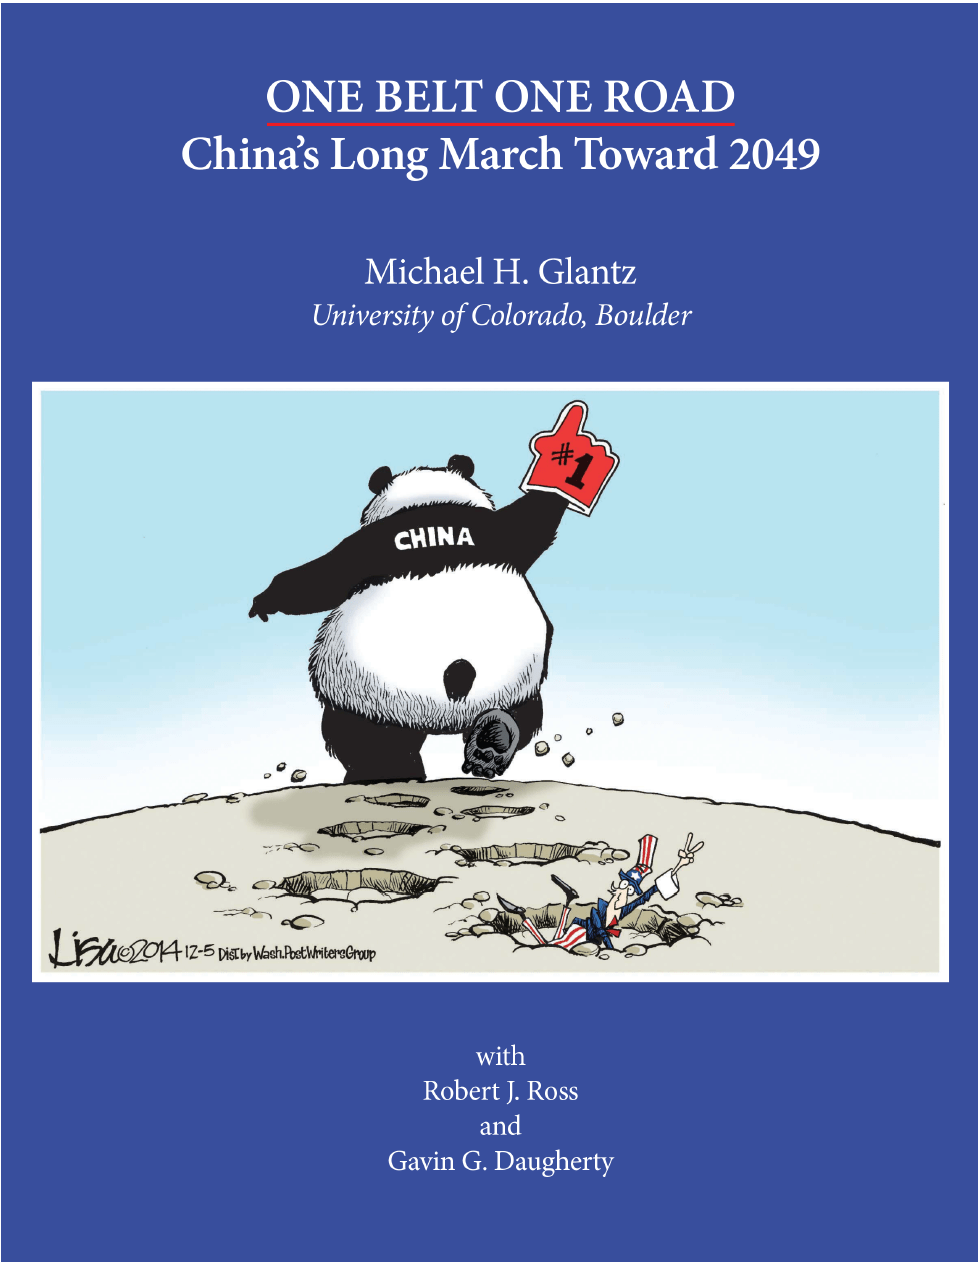 Press Release: One Belt One Road: China's Long March Toward 2049 Book